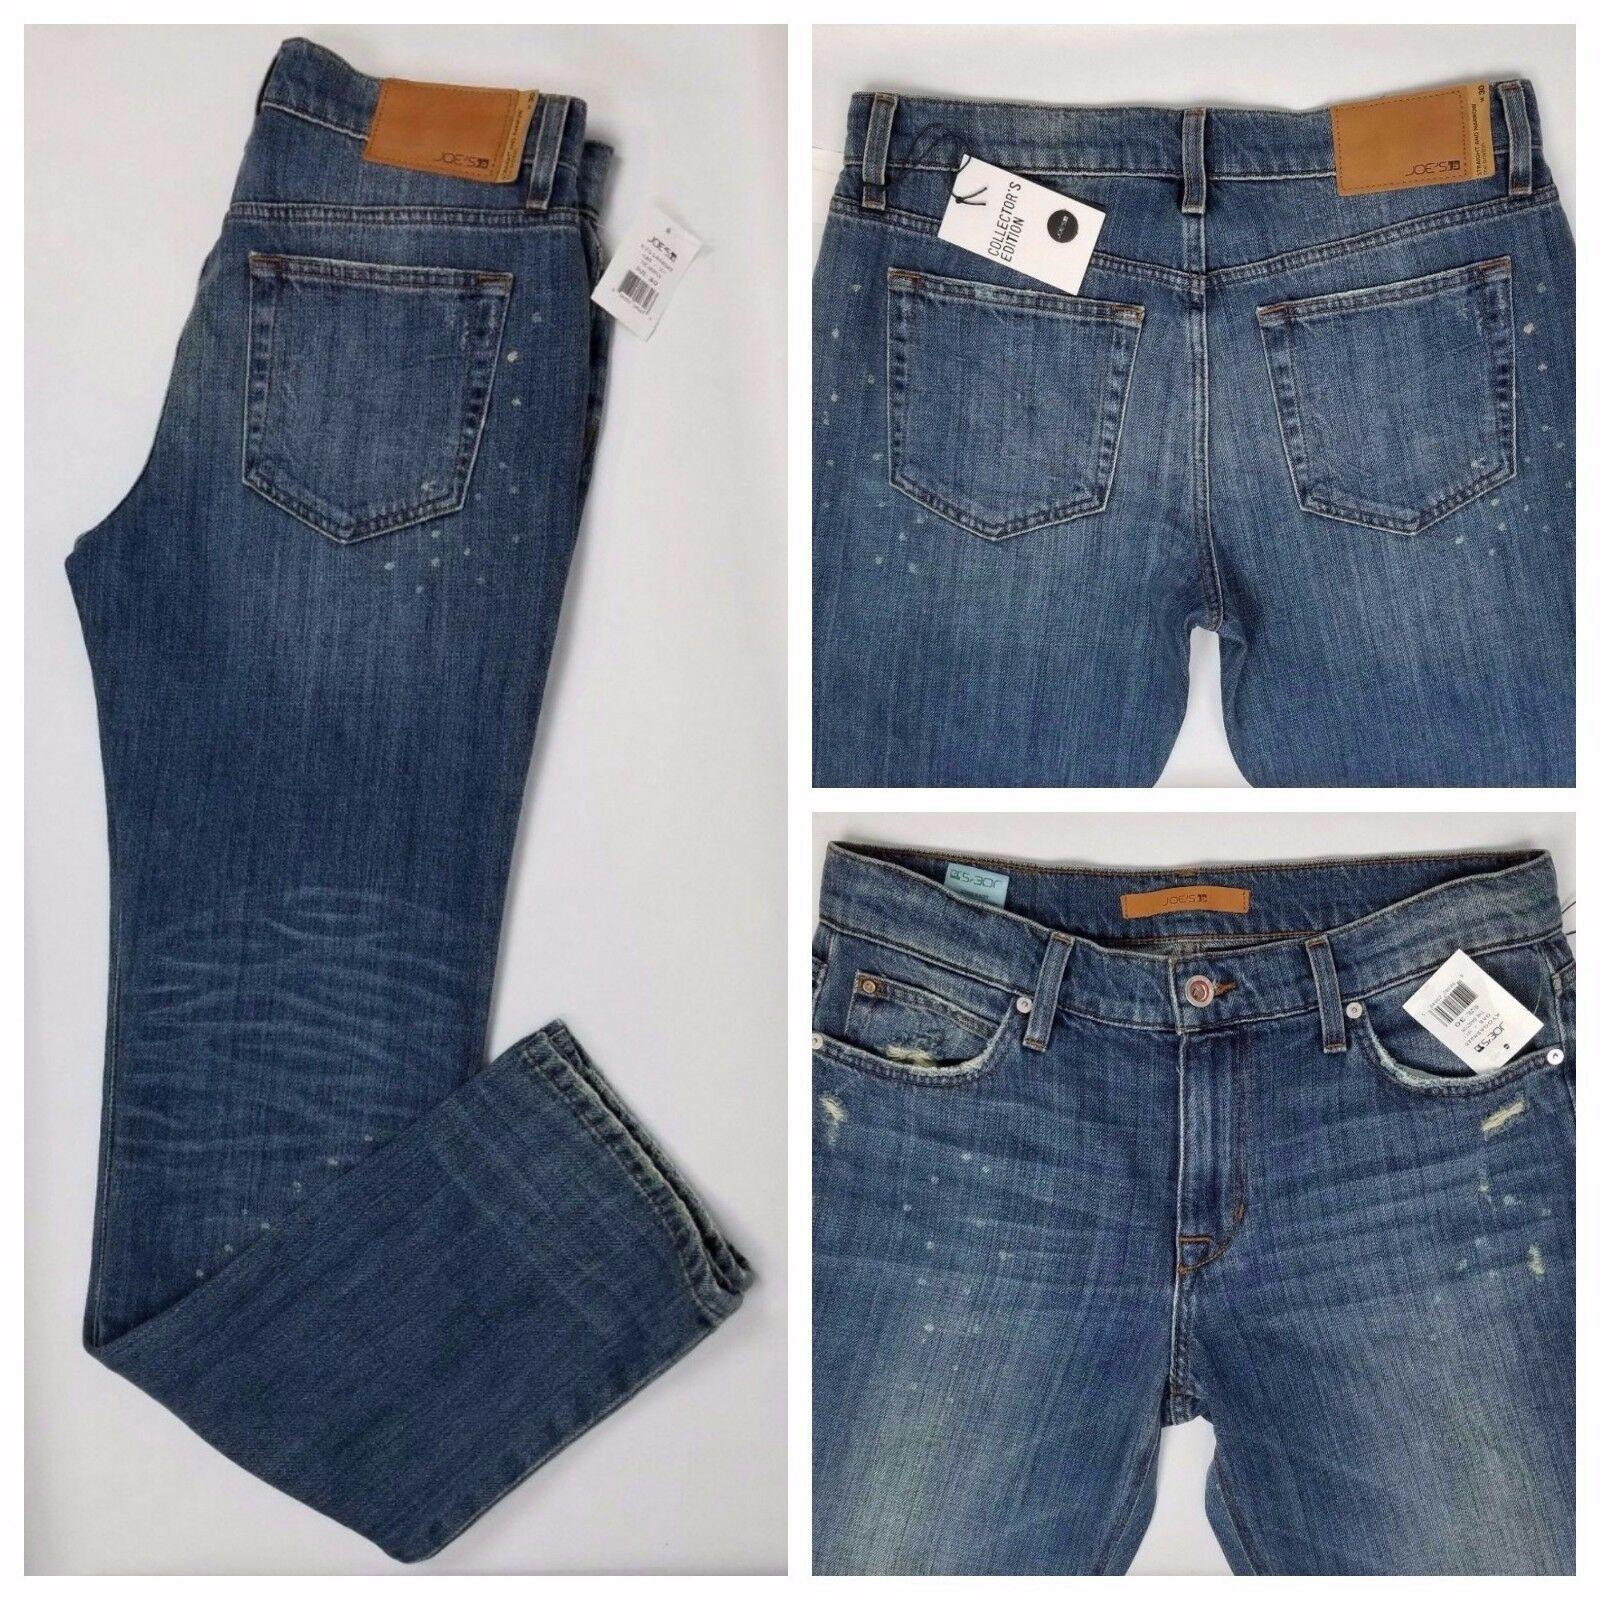 Joe's Jeans Collectors Edition Brixton Straight and Narrow Jeans, Graves, Sz 30